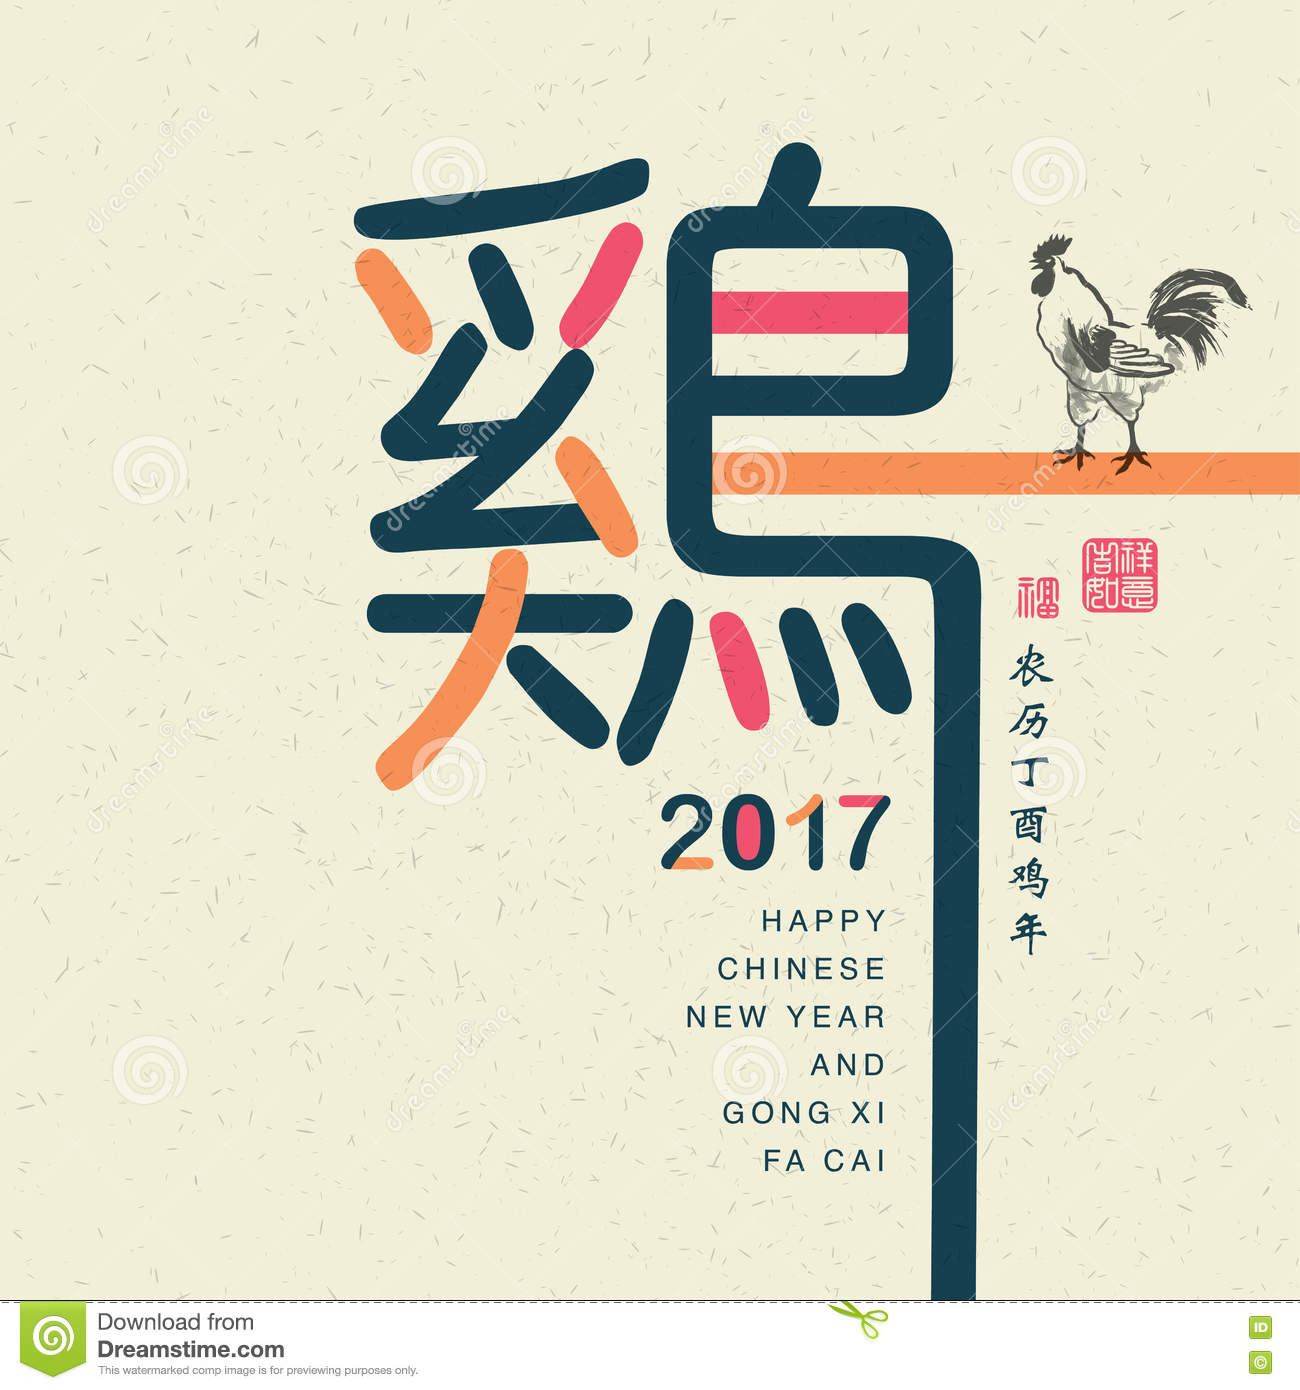 New year 2017 greeting pictures year of rooster happy chinese new year - Happy Chinese New Year 2017